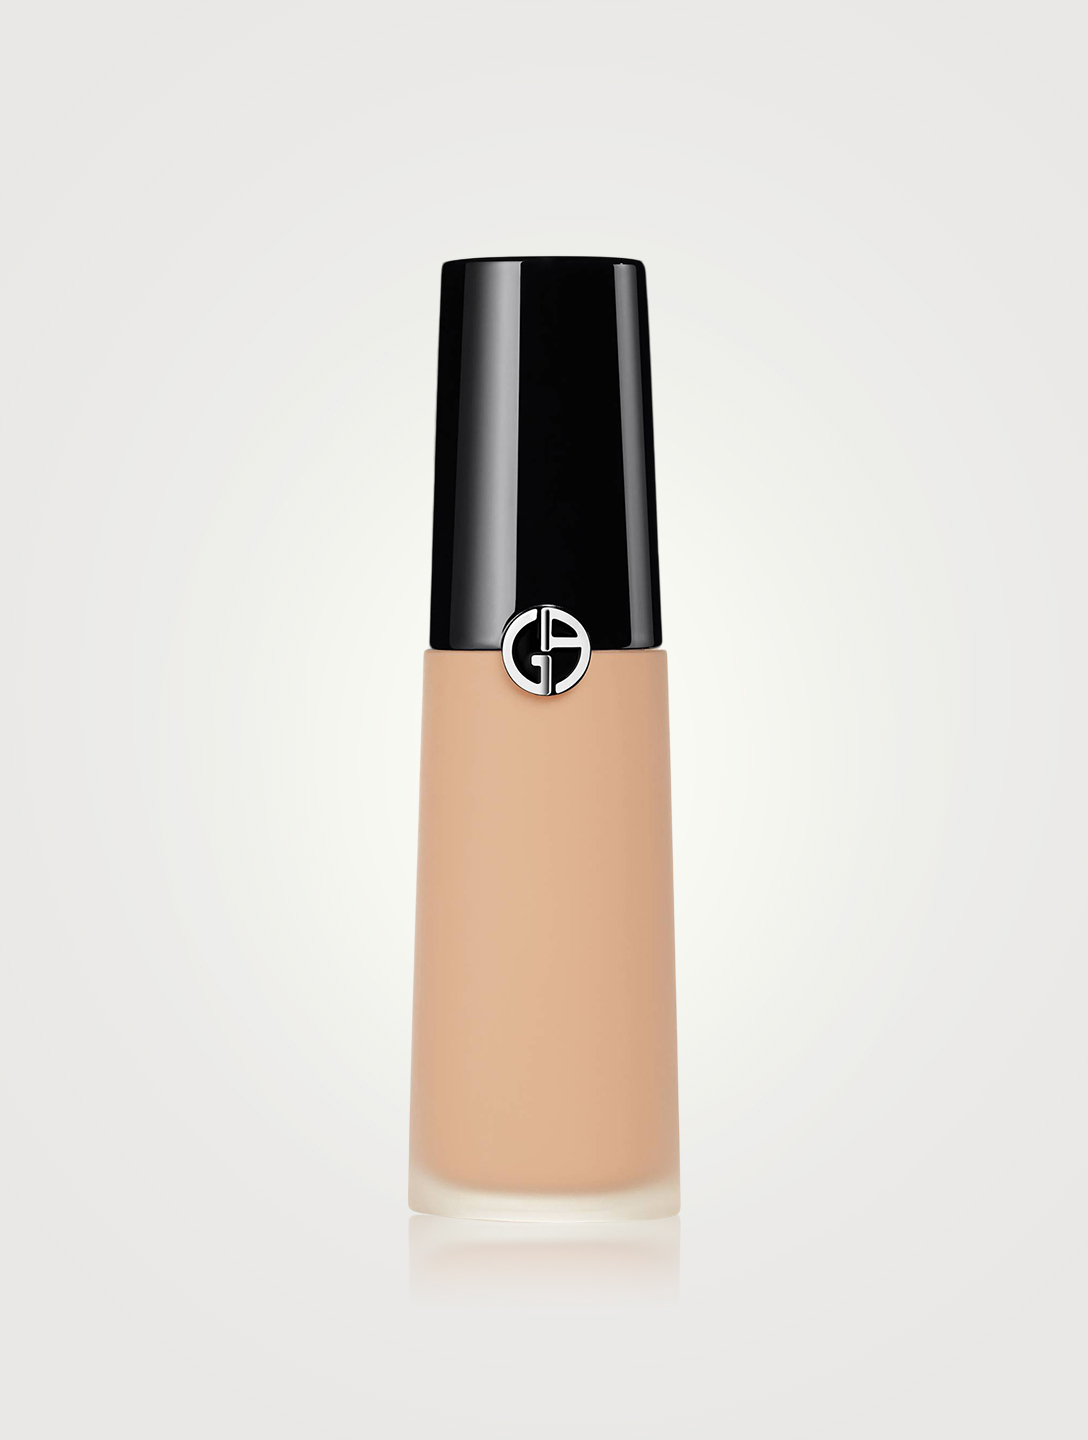 GIORGIO ARMANI Luminous Silk Concealer Beauty Neutral